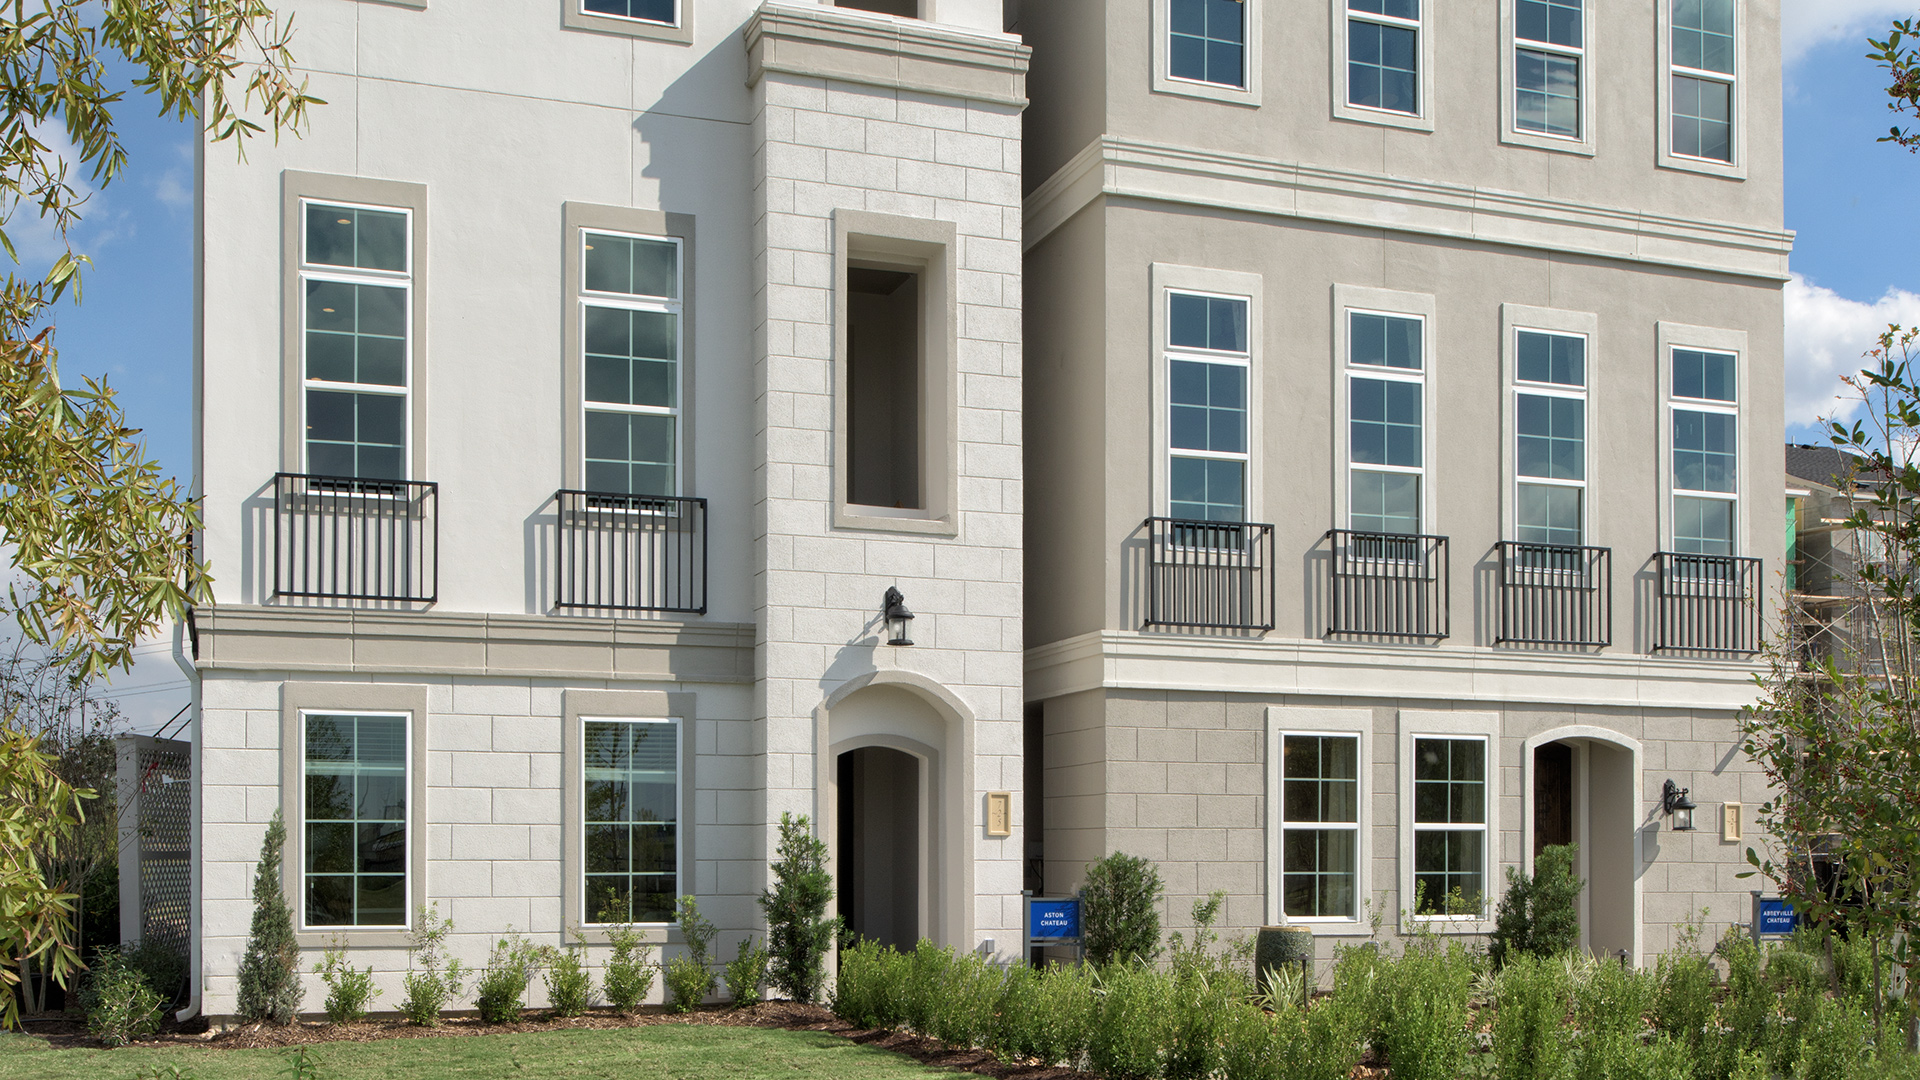 Aston Chateau and Abbeyville Chateau Professionally Decorated Model Homes - Somerset Green - Houston, TX